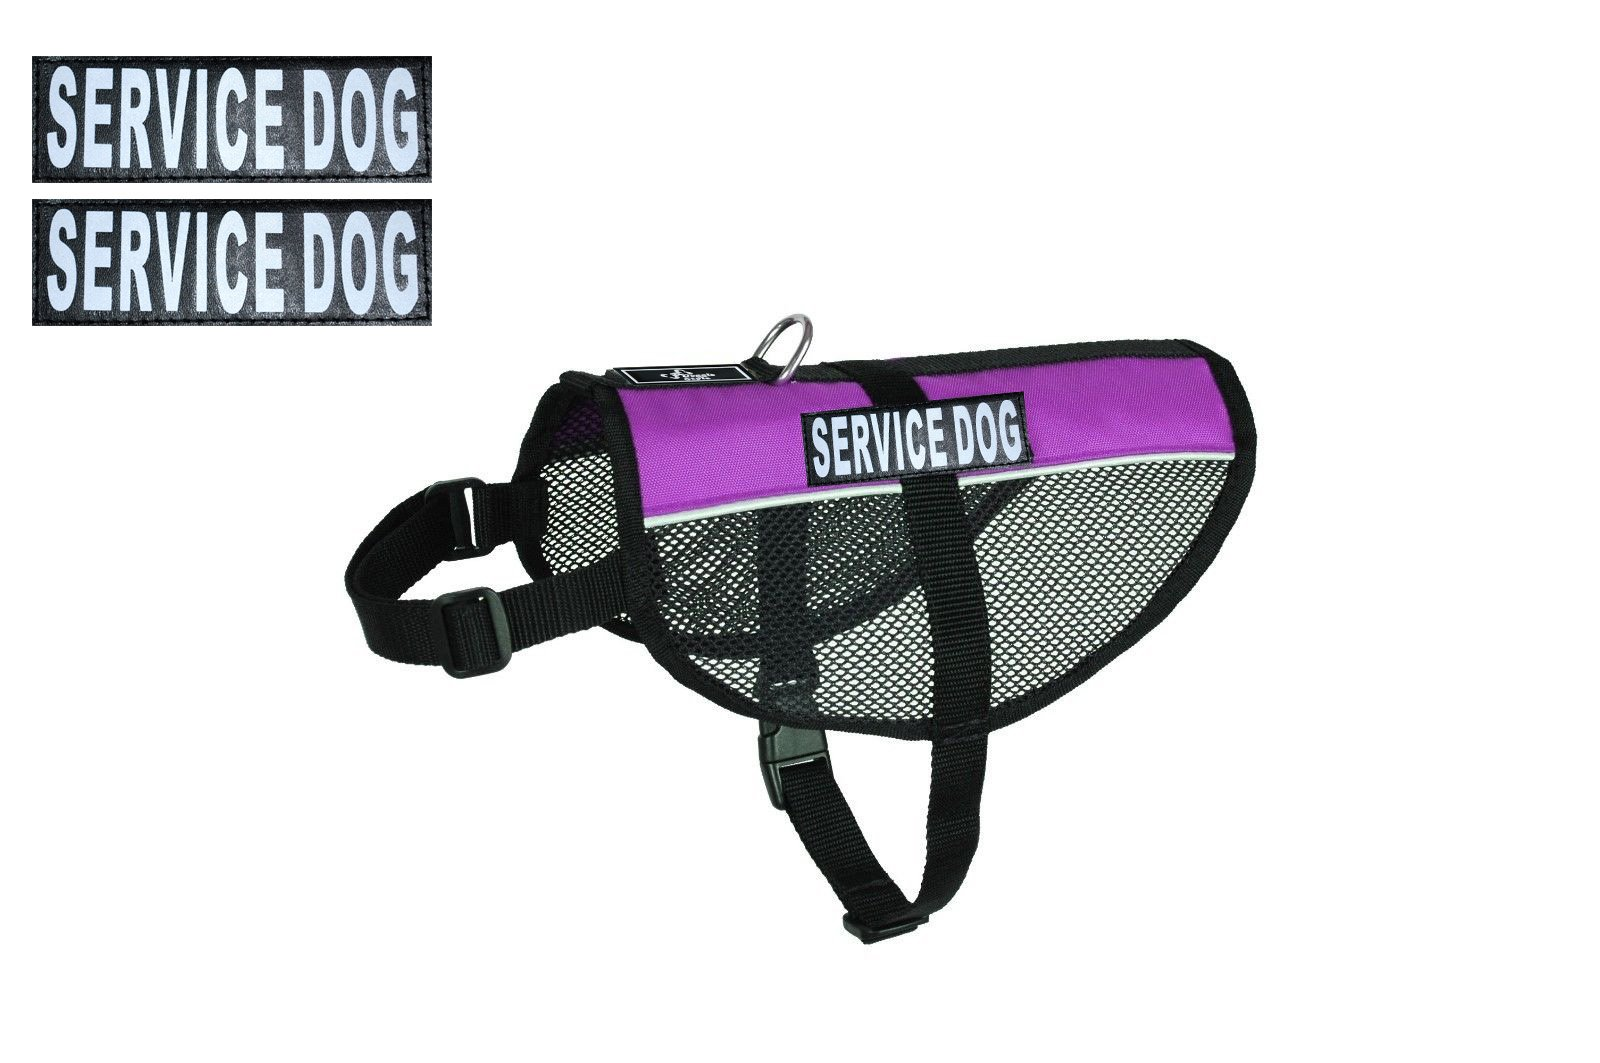 Service Dog mesh vest Harness Cool Comfort Nylon for dogs Small Medium Large Purchase comes with 2 reflective SERVICE DOG pathces. PLEASE MEASURE your dog before ordering